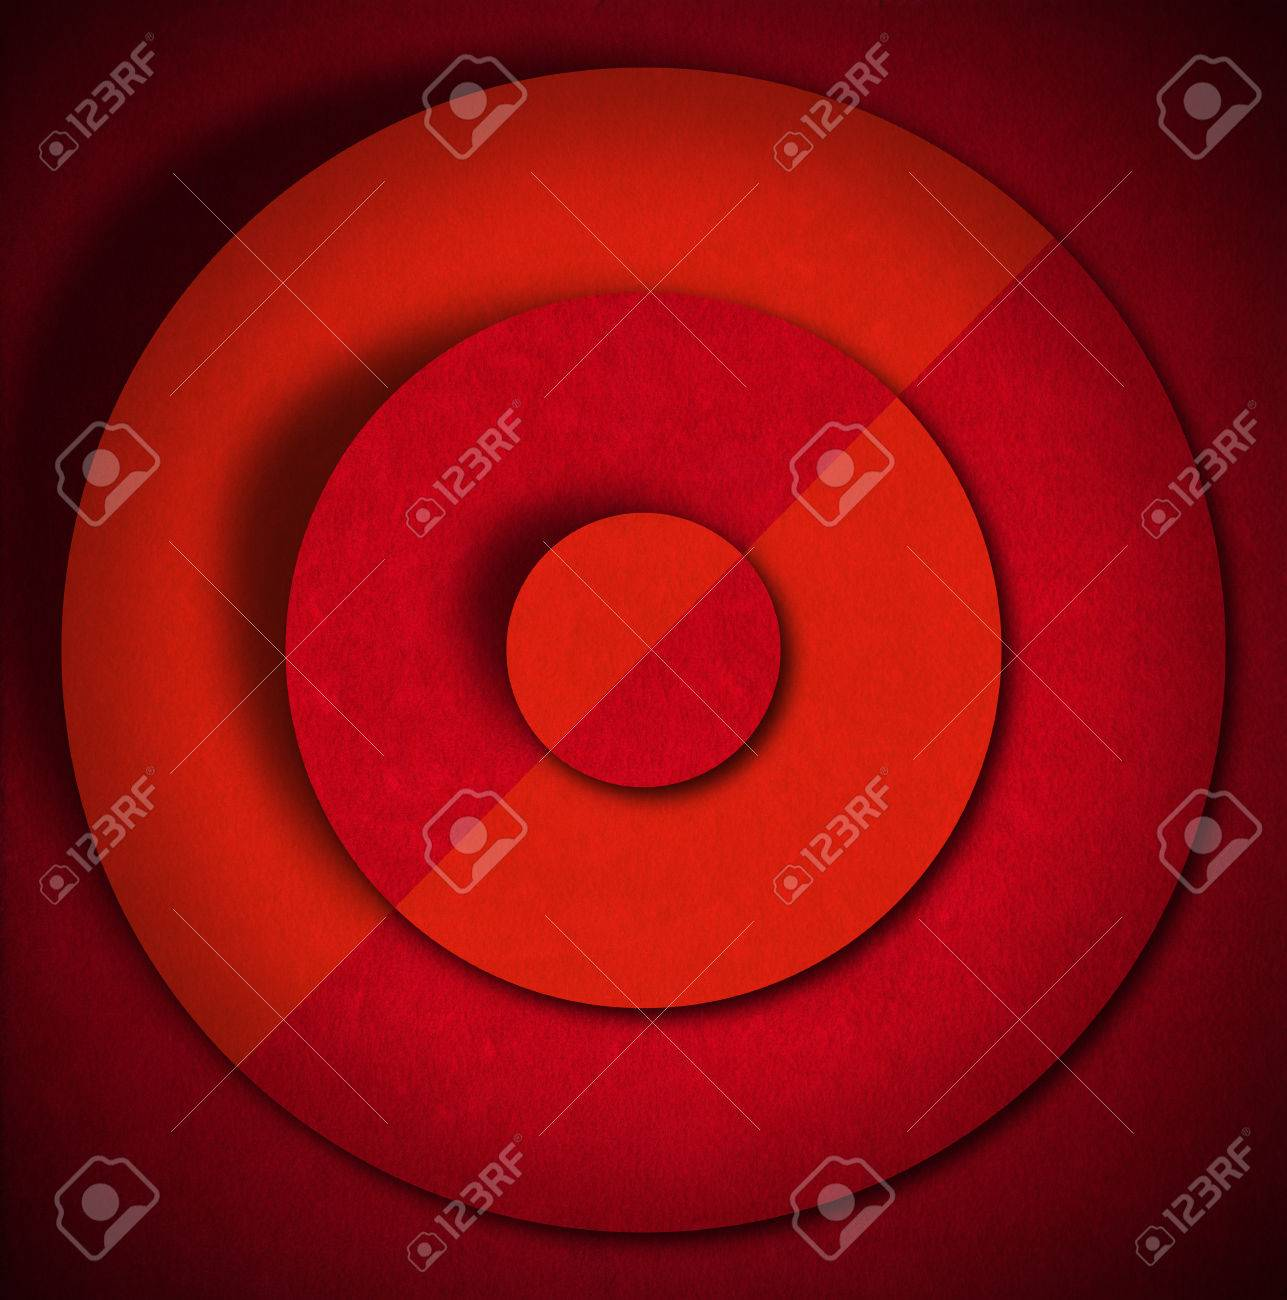 Aged red and orange velvet texture background with concentric circles and shadows Stock Photo - 24039919